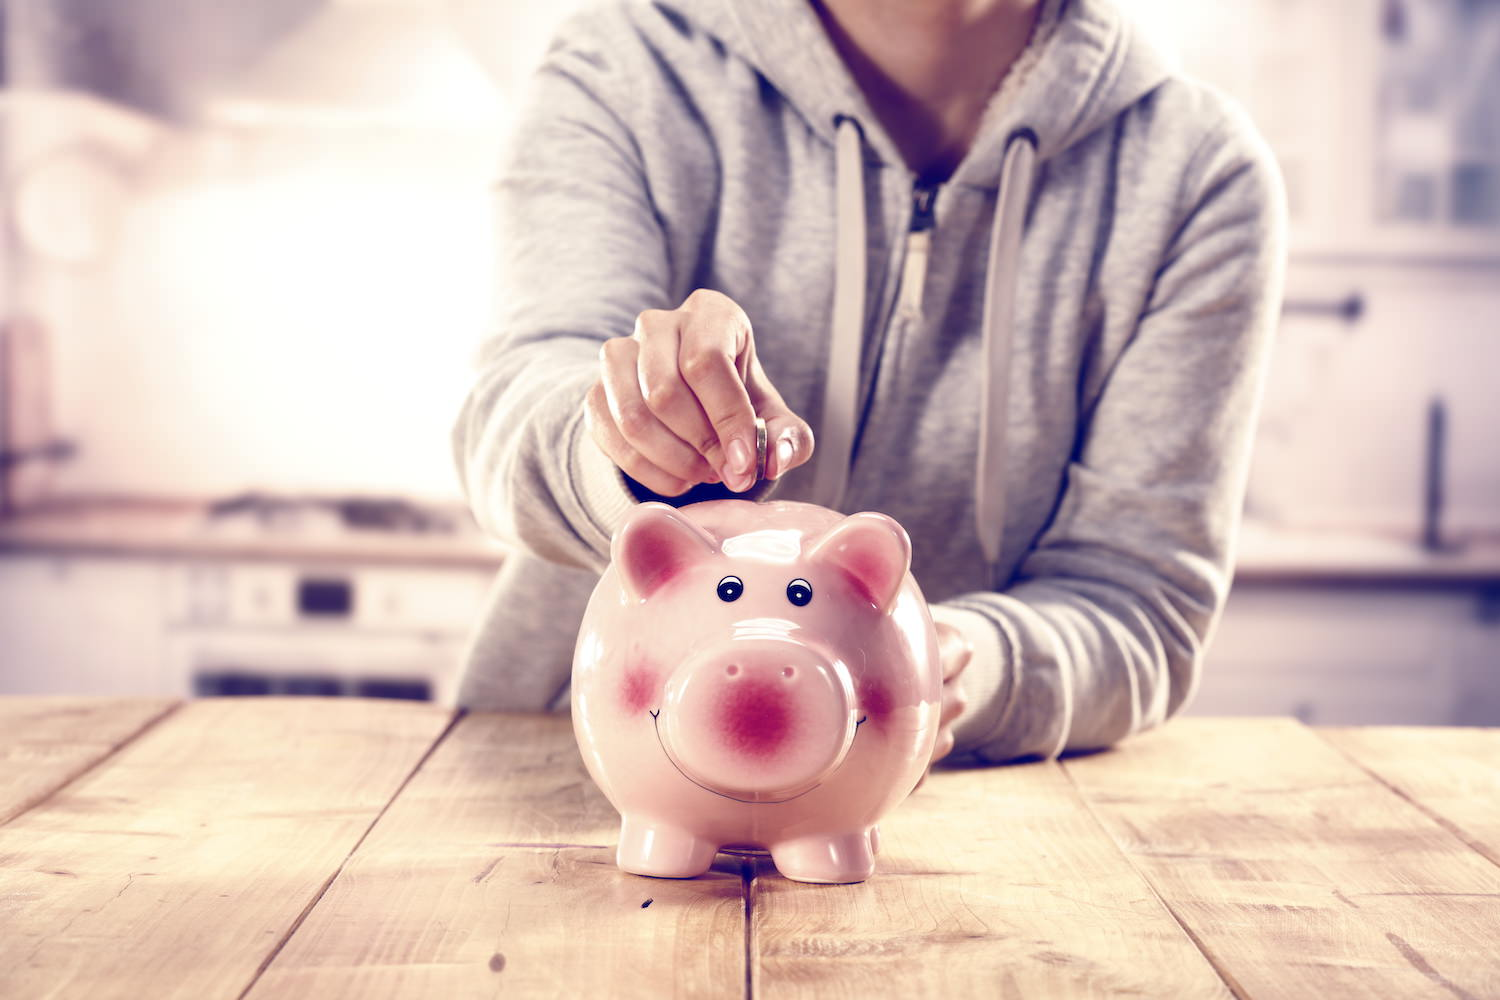 Financial Session ($300 - 4 hours) - If your disorganization has seeped into your finances let me get you back on track. I will help you manage your financial related problems in a well-organized manner, eliminating stress and worry regarding your money.